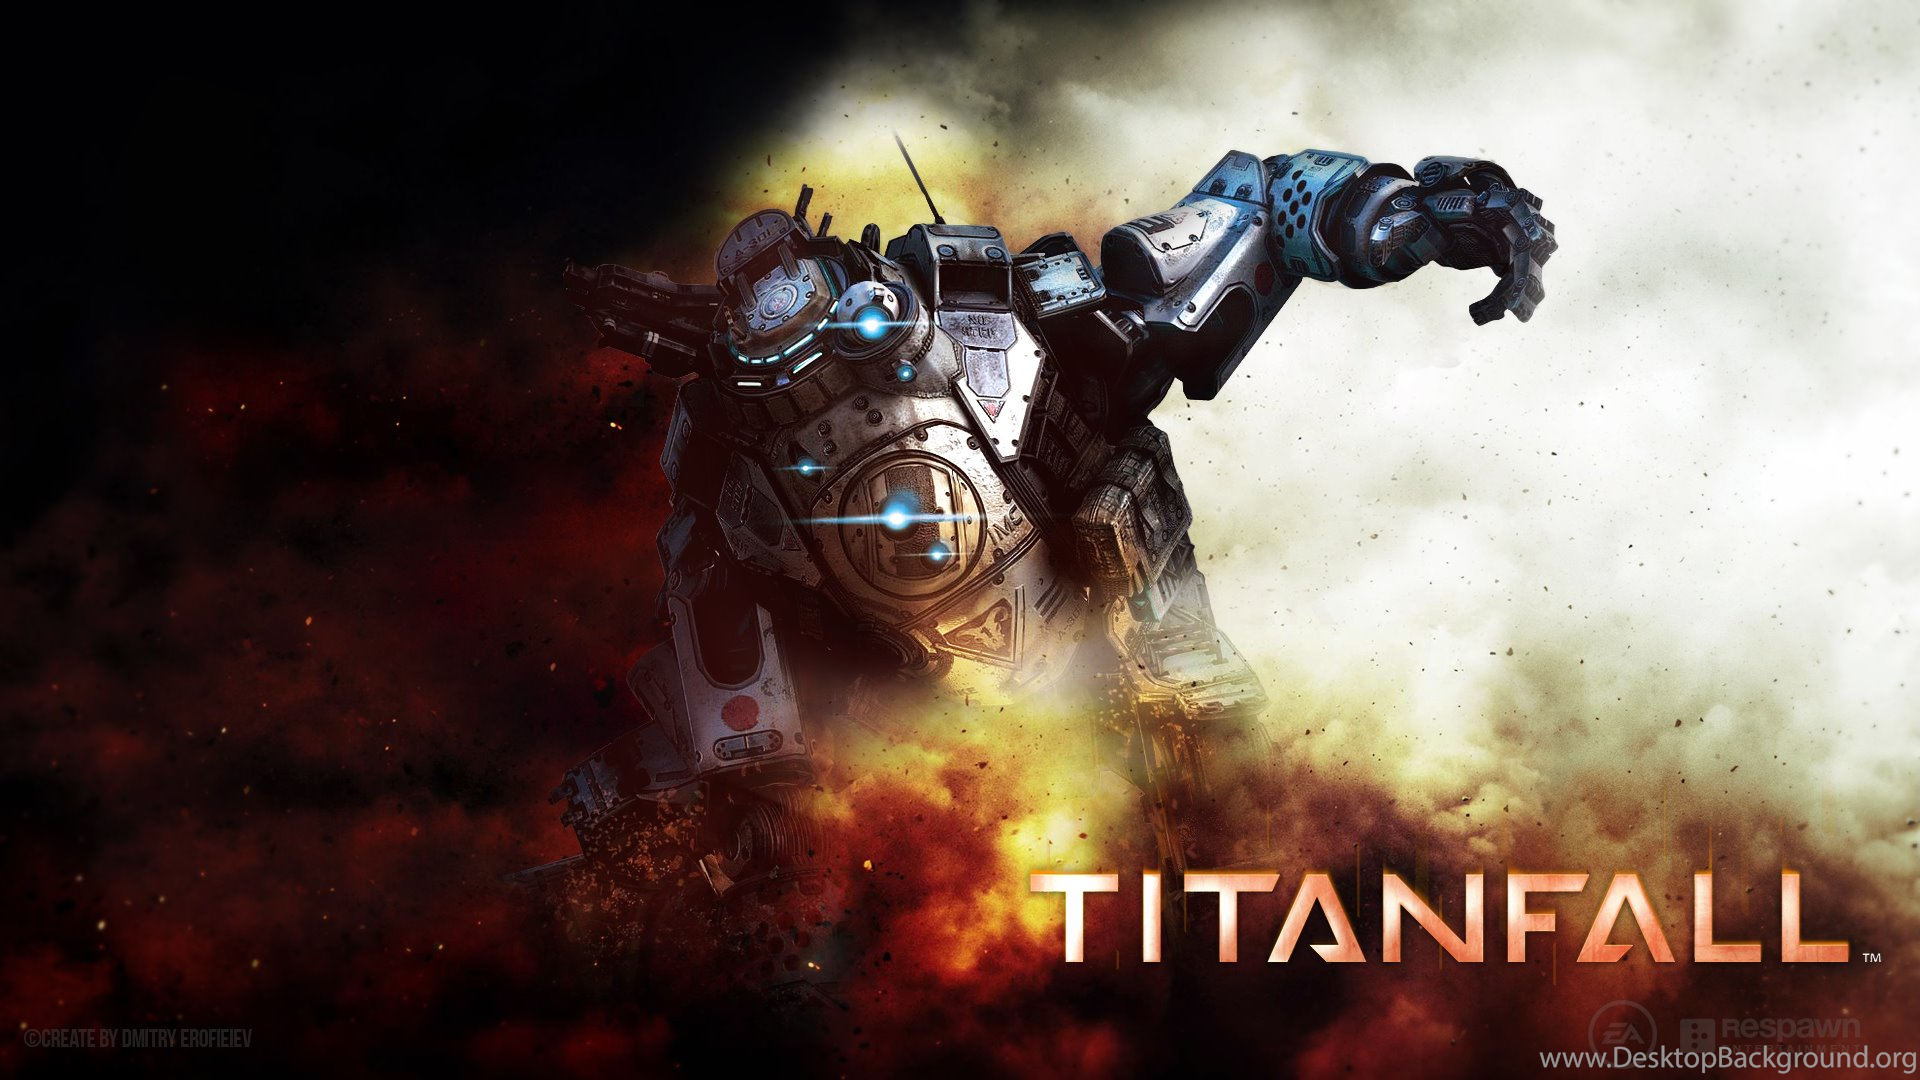 64 titanfall hd wallpapers desktop background